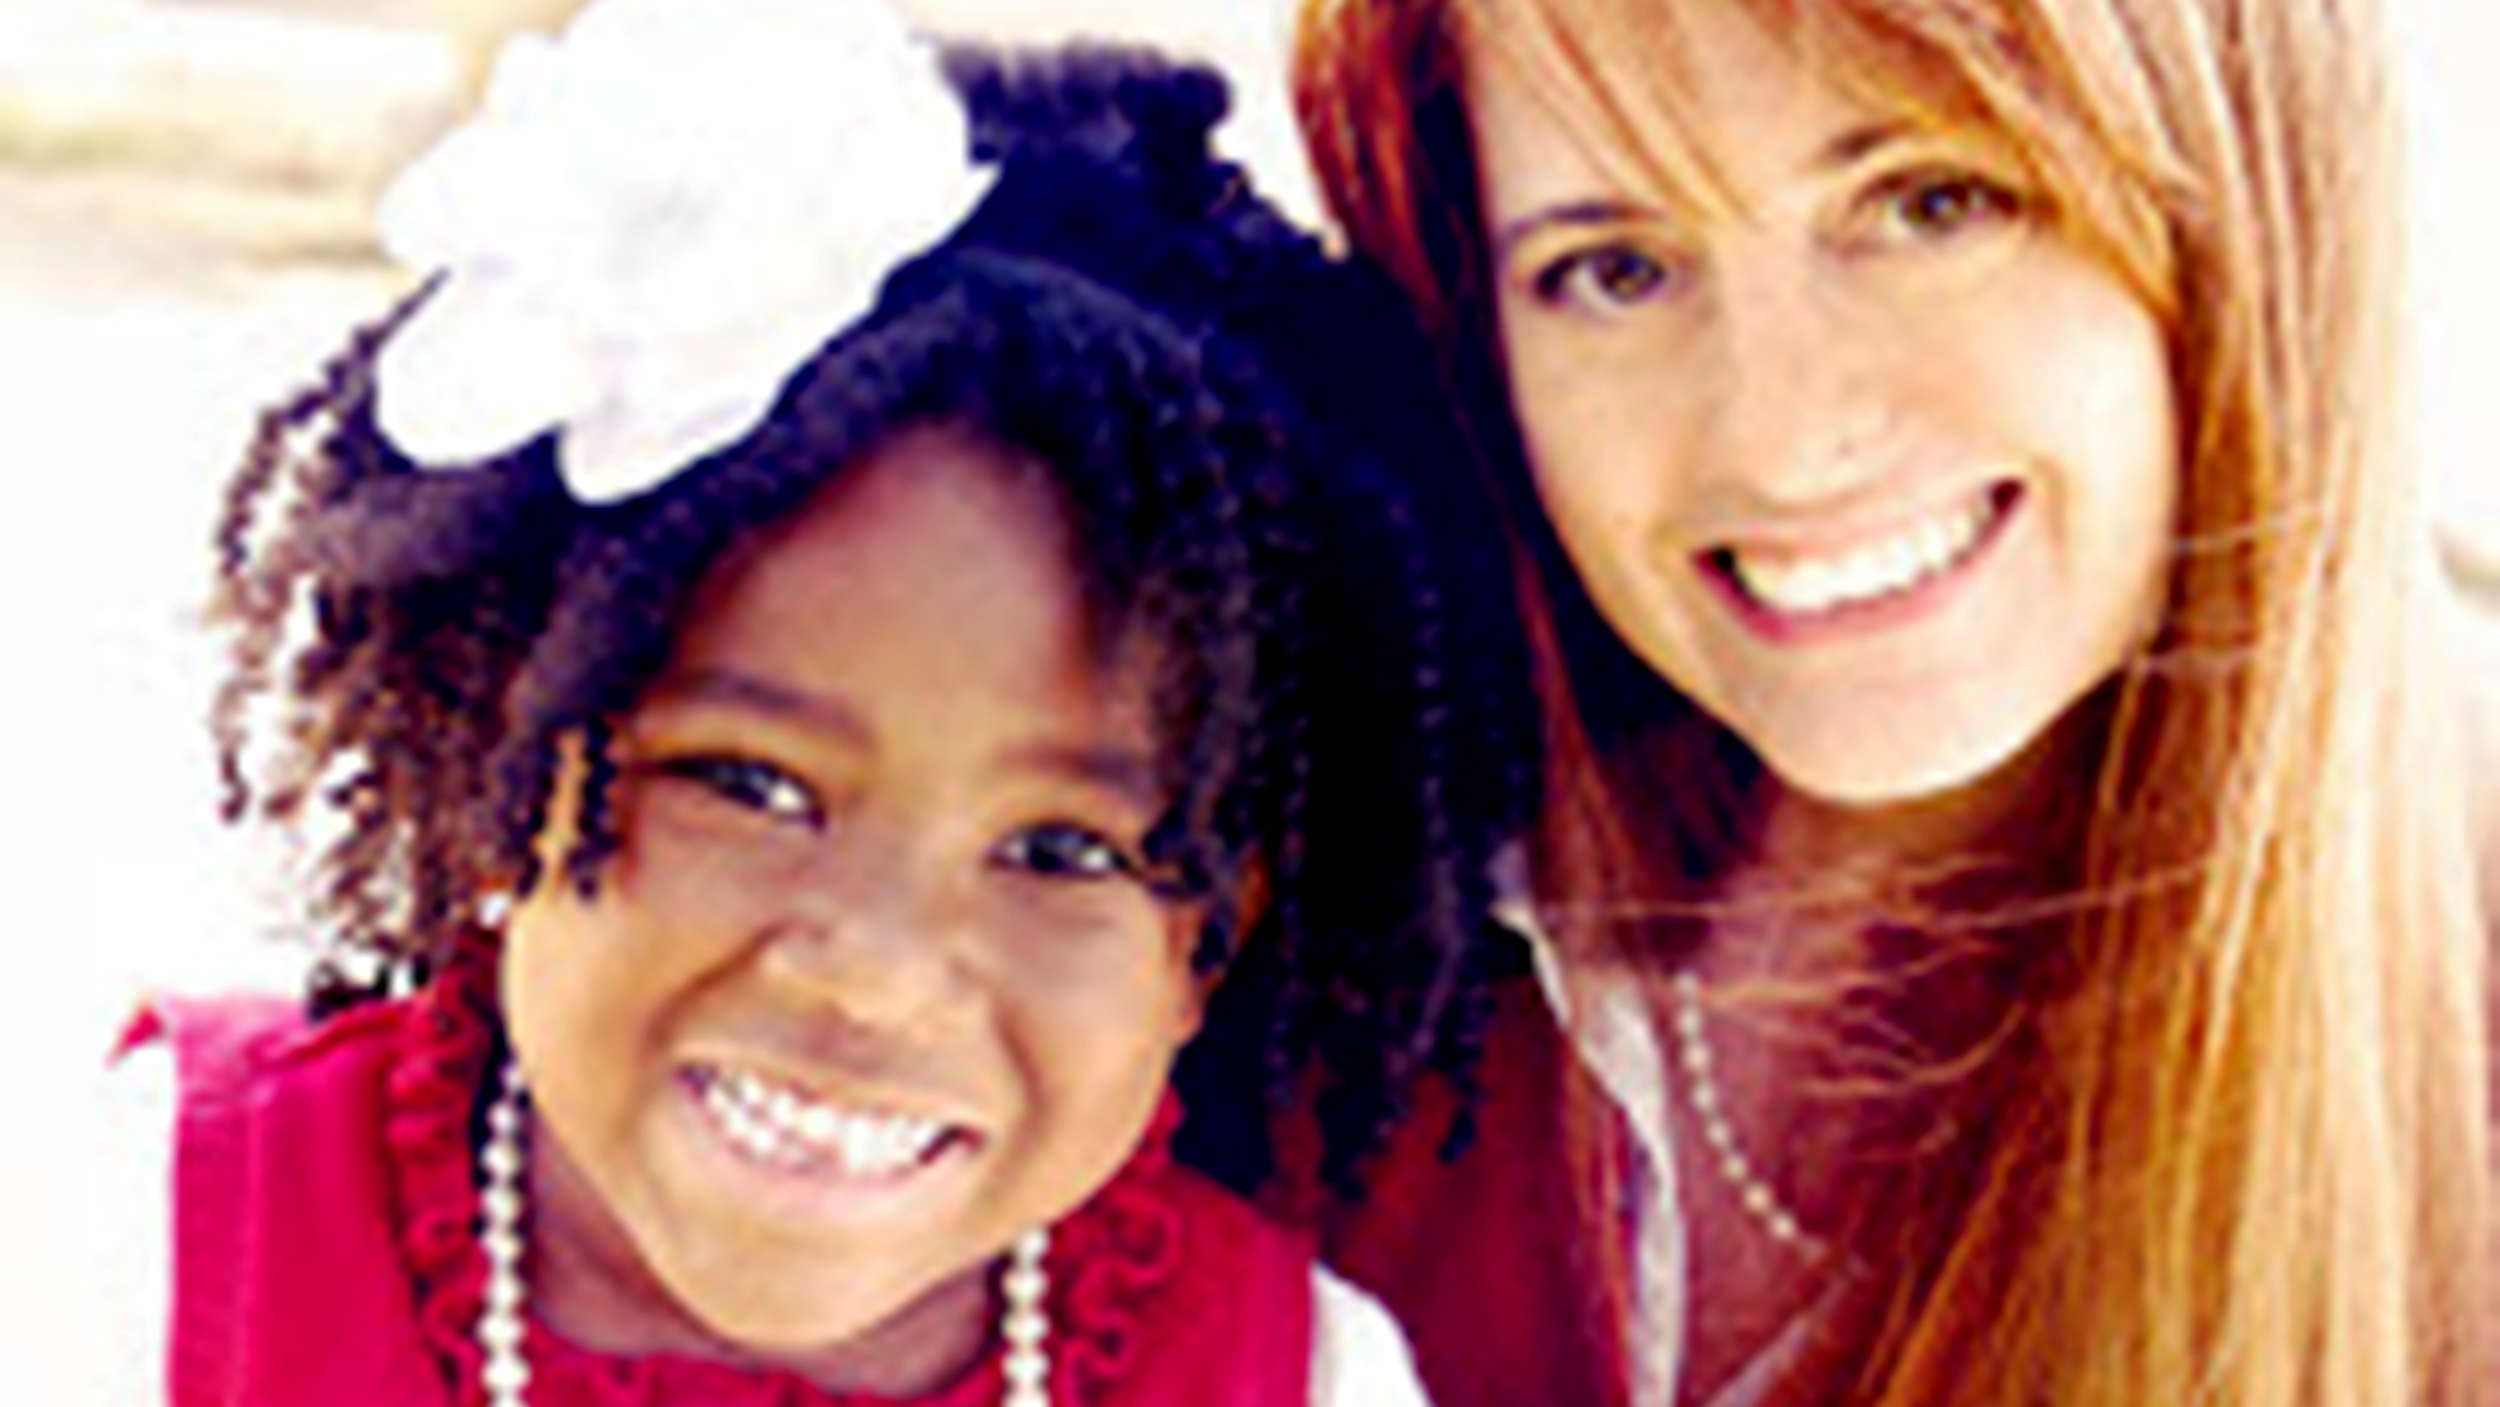 White Moms Black Hair Blogs Teach Adoptive And Interracial Families To Care For